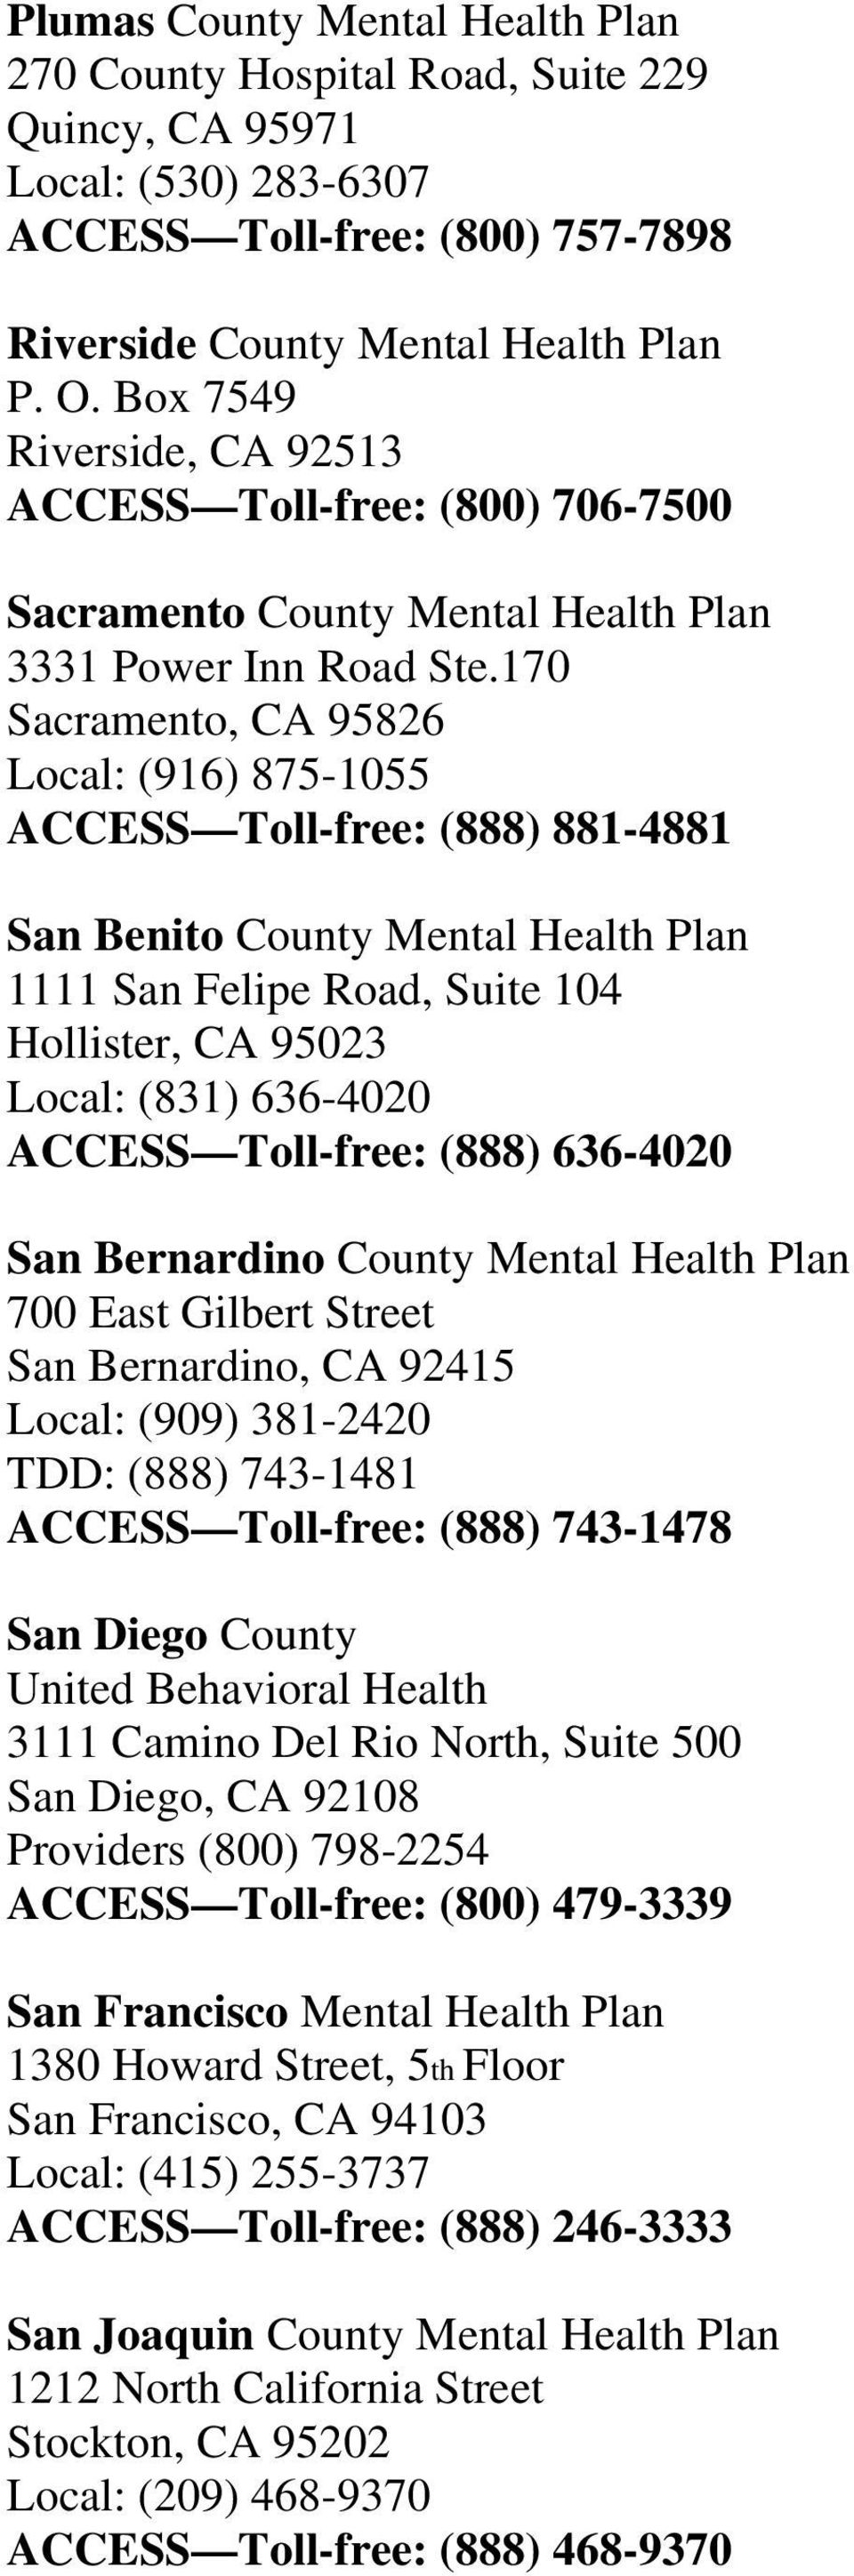 170 Sacramento, CA 95826 Local: (916) 875-1055 ACCESS Toll-free: (888) 881-4881 San Benito County Mental Health Plan 1111 San Felipe Road, Suite 104 Hollister, CA 95023 Local: (831) 636-4020 ACCESS